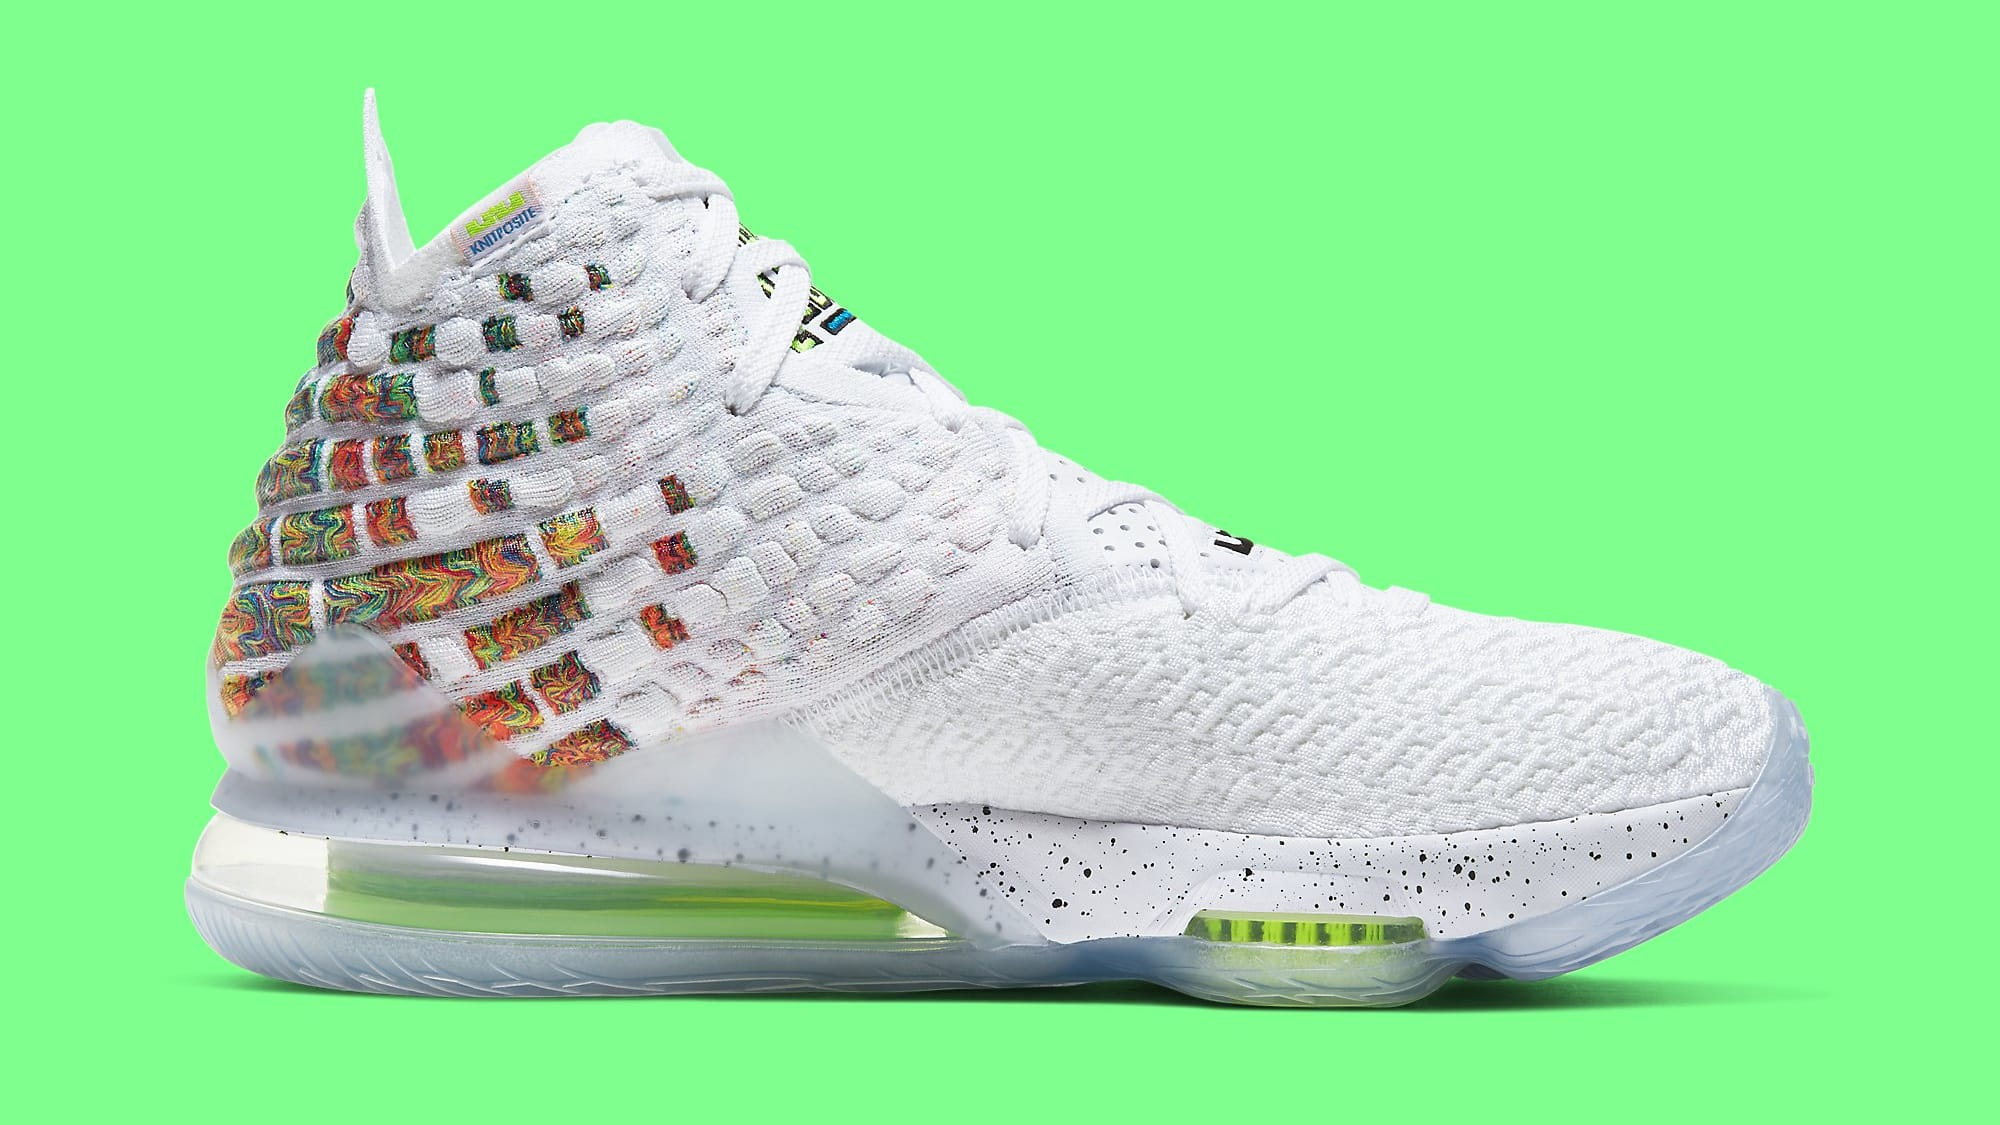 Nike LeBron 17 'Command Force' BQ3177-100 Medial